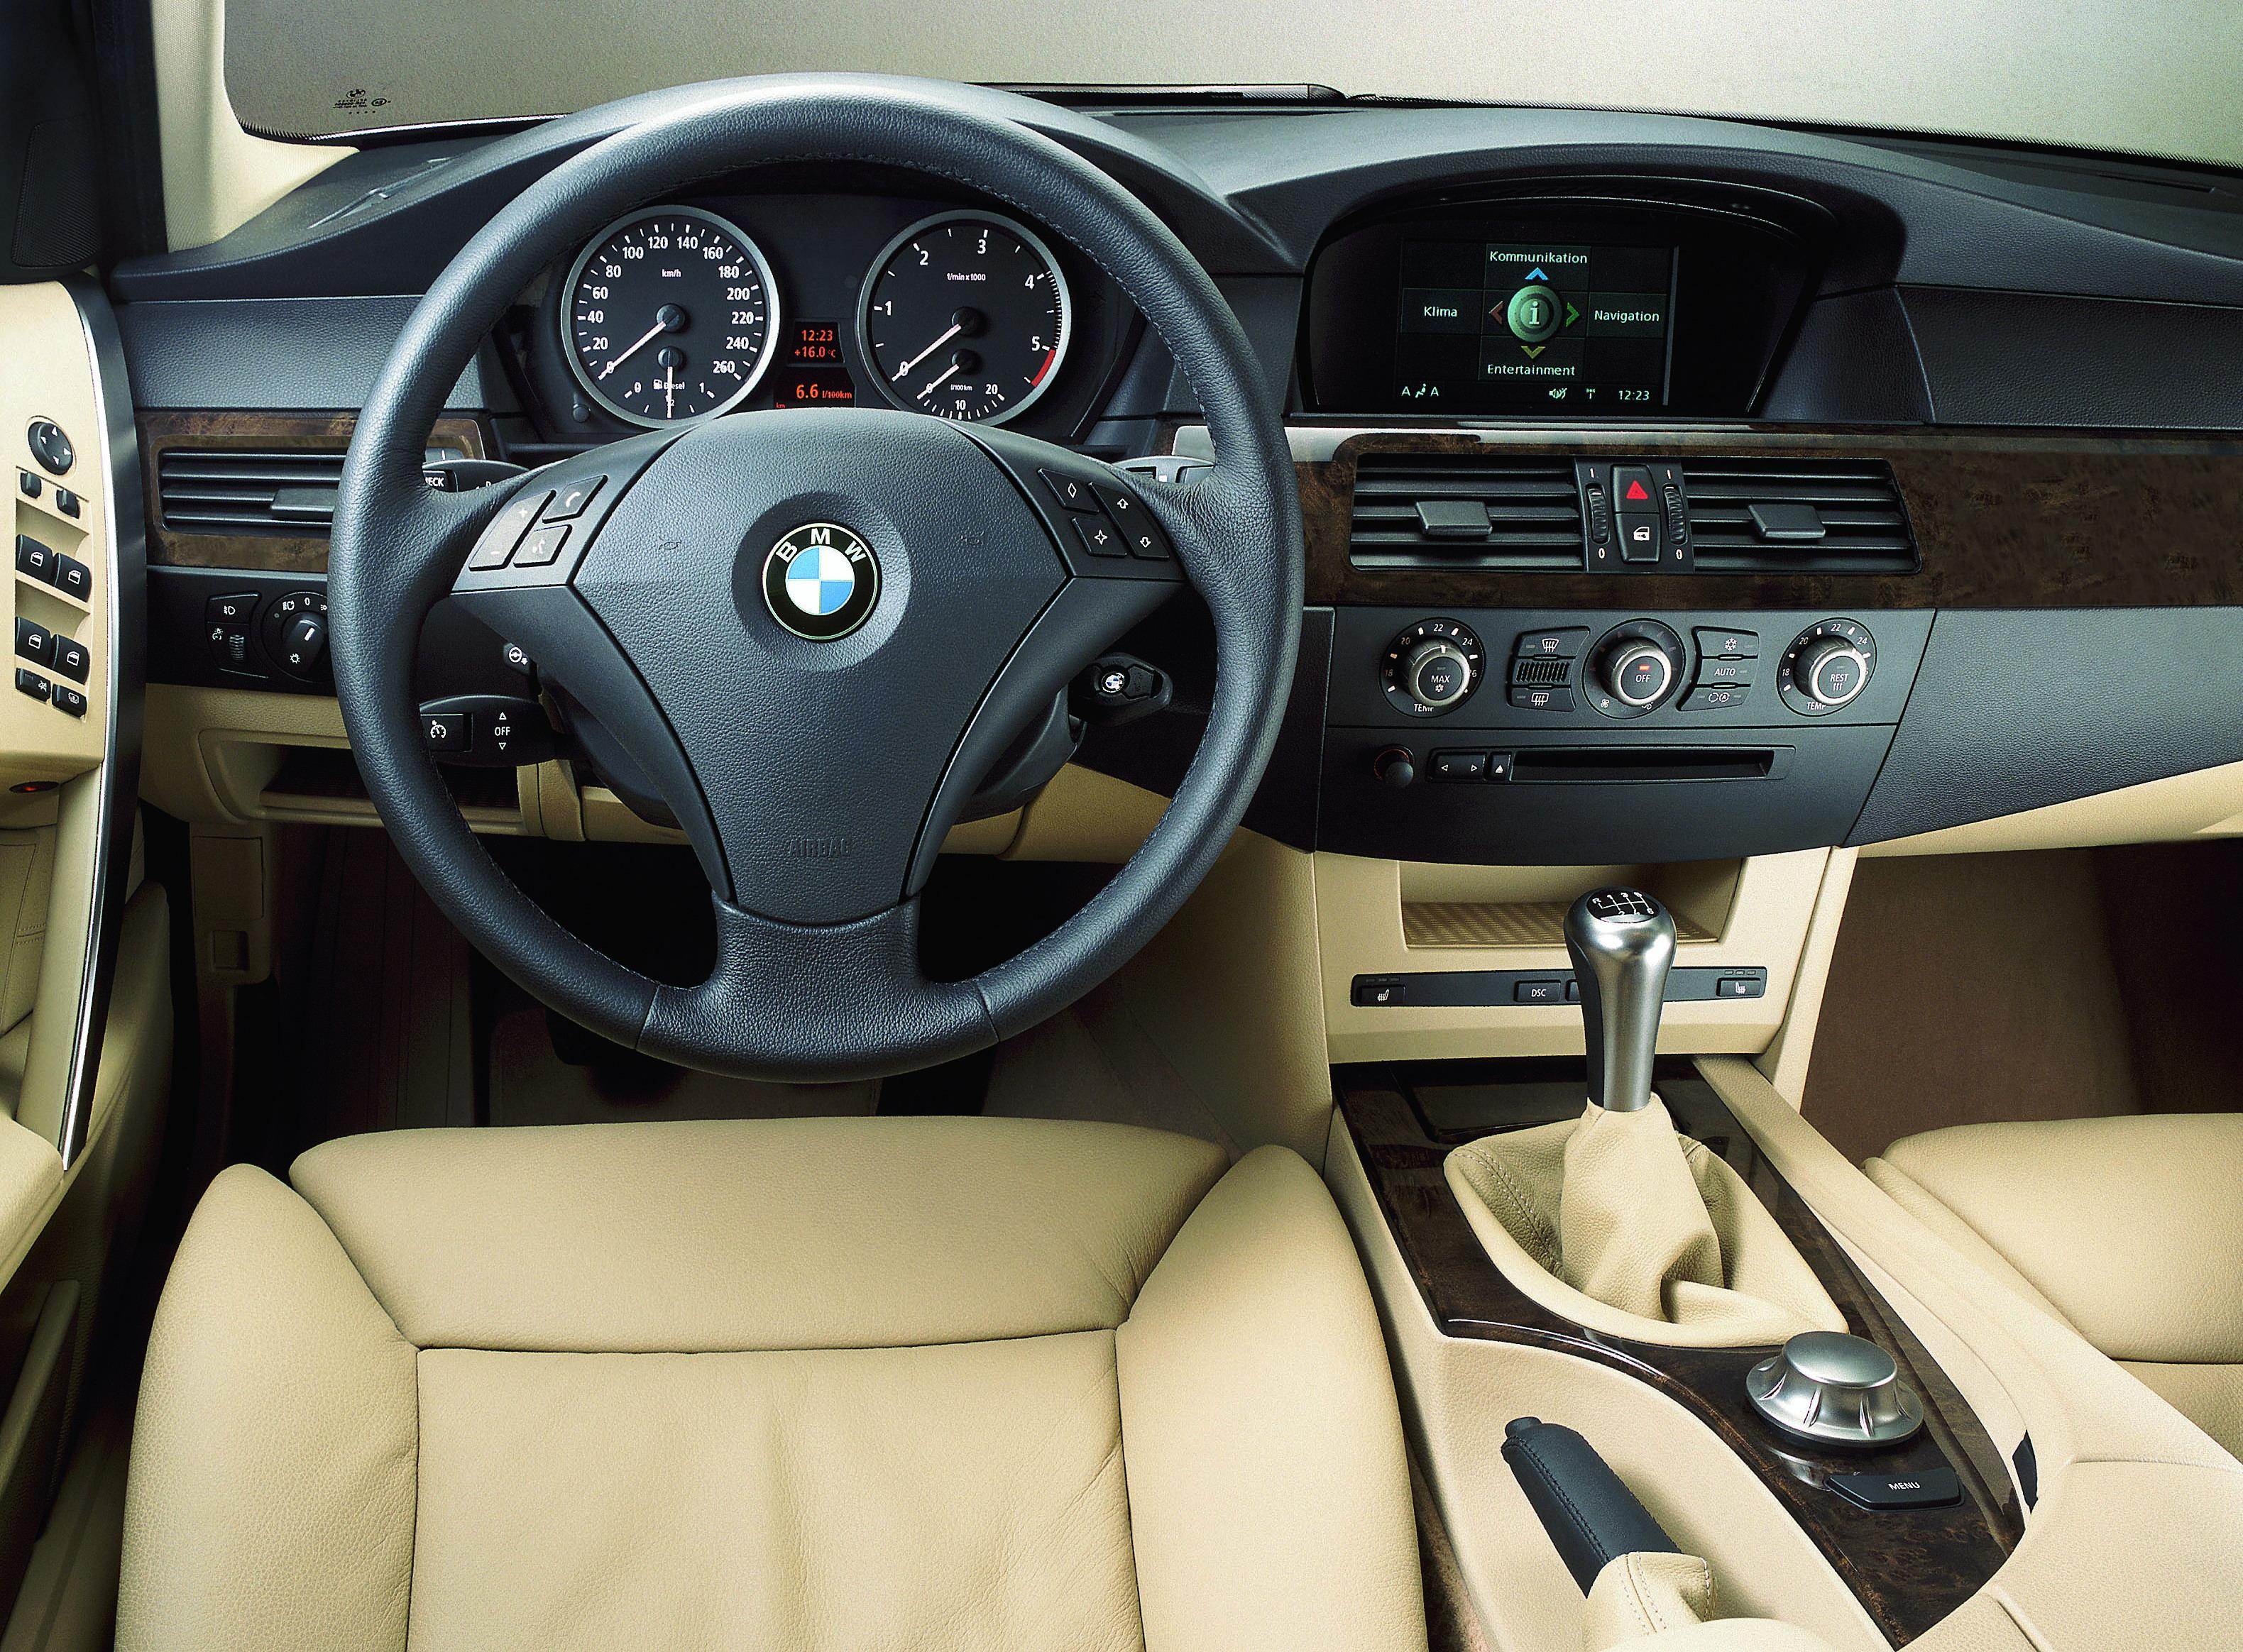 2007 BMW 5-Series | Top Speed. »